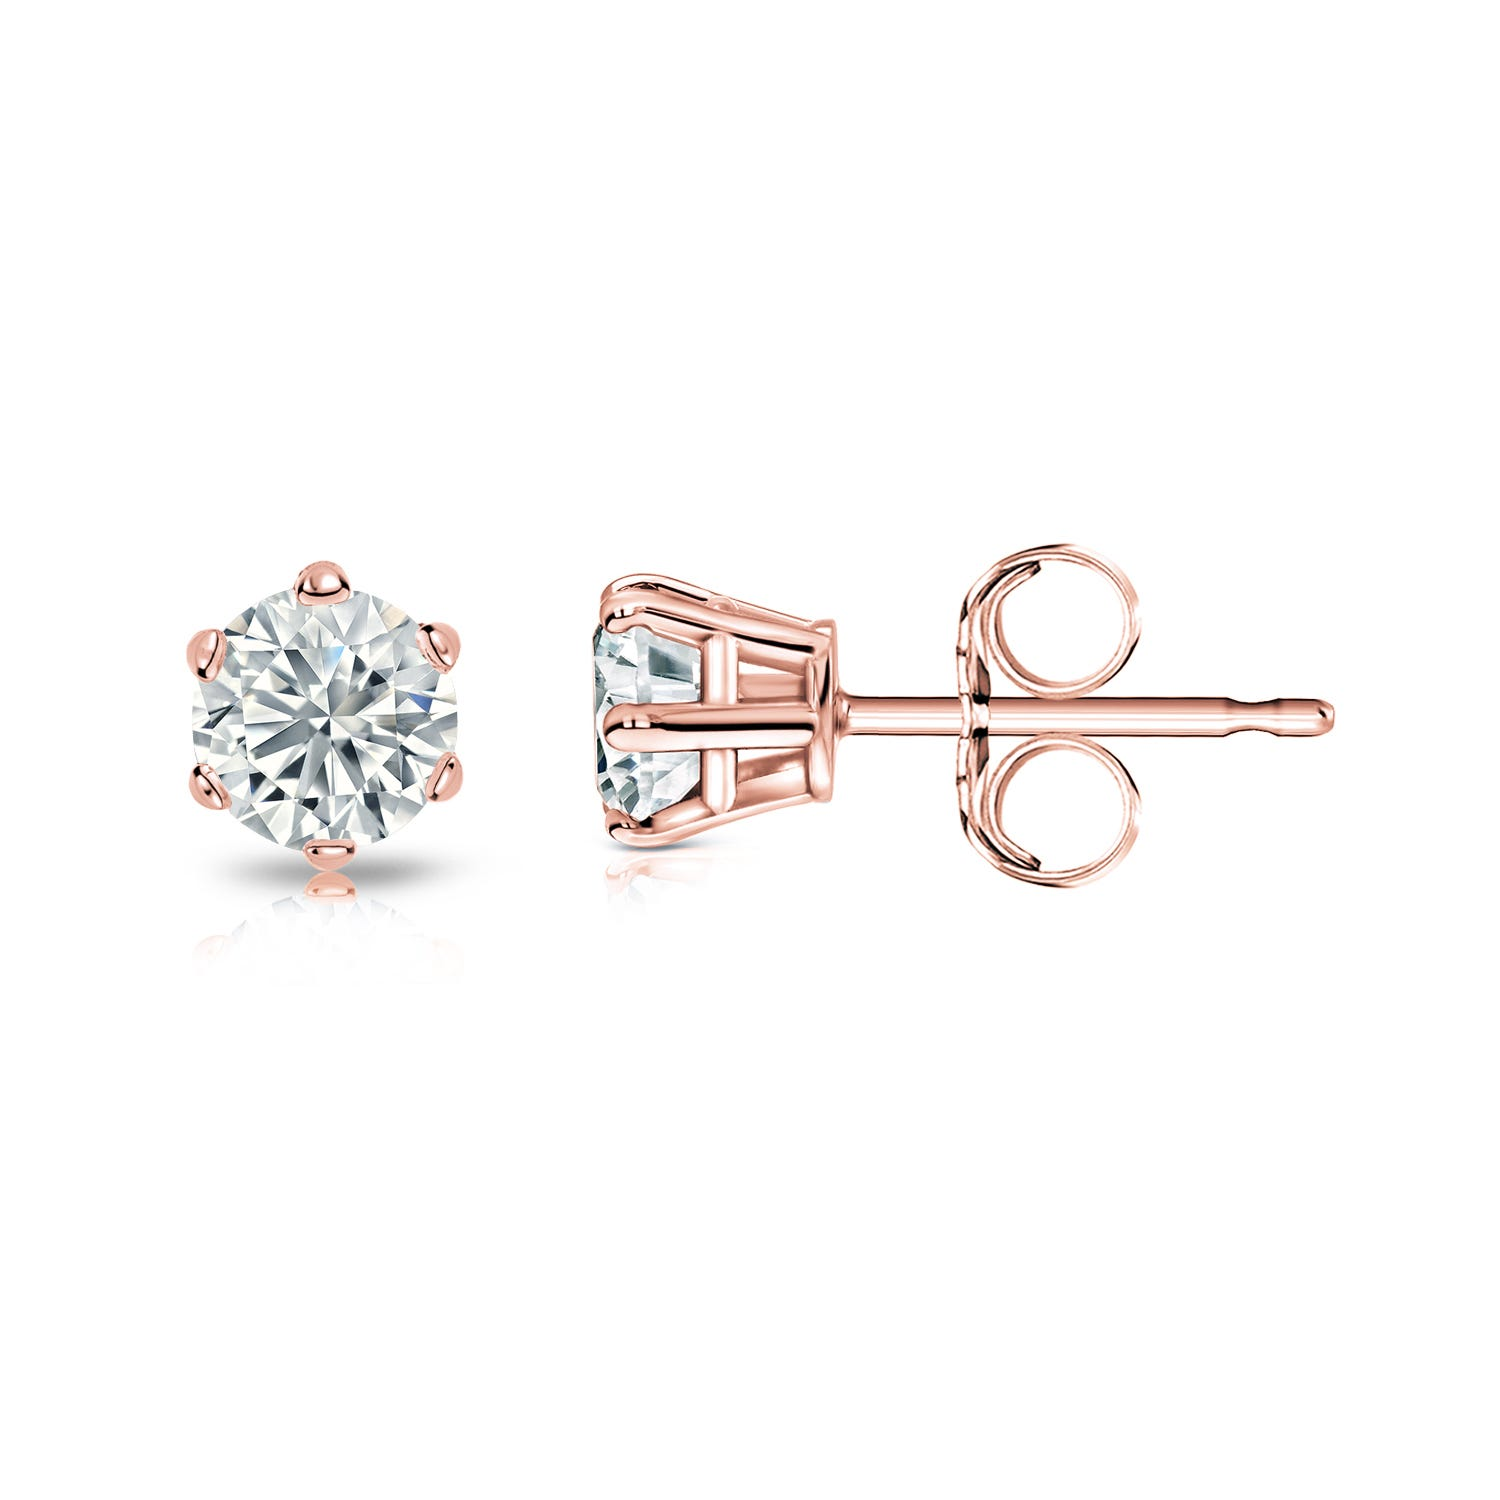 Round Diamond 1/10ctw. (IJ-I1) Solitaire Stud 6-Prong Earrings in 14K Rose Gold